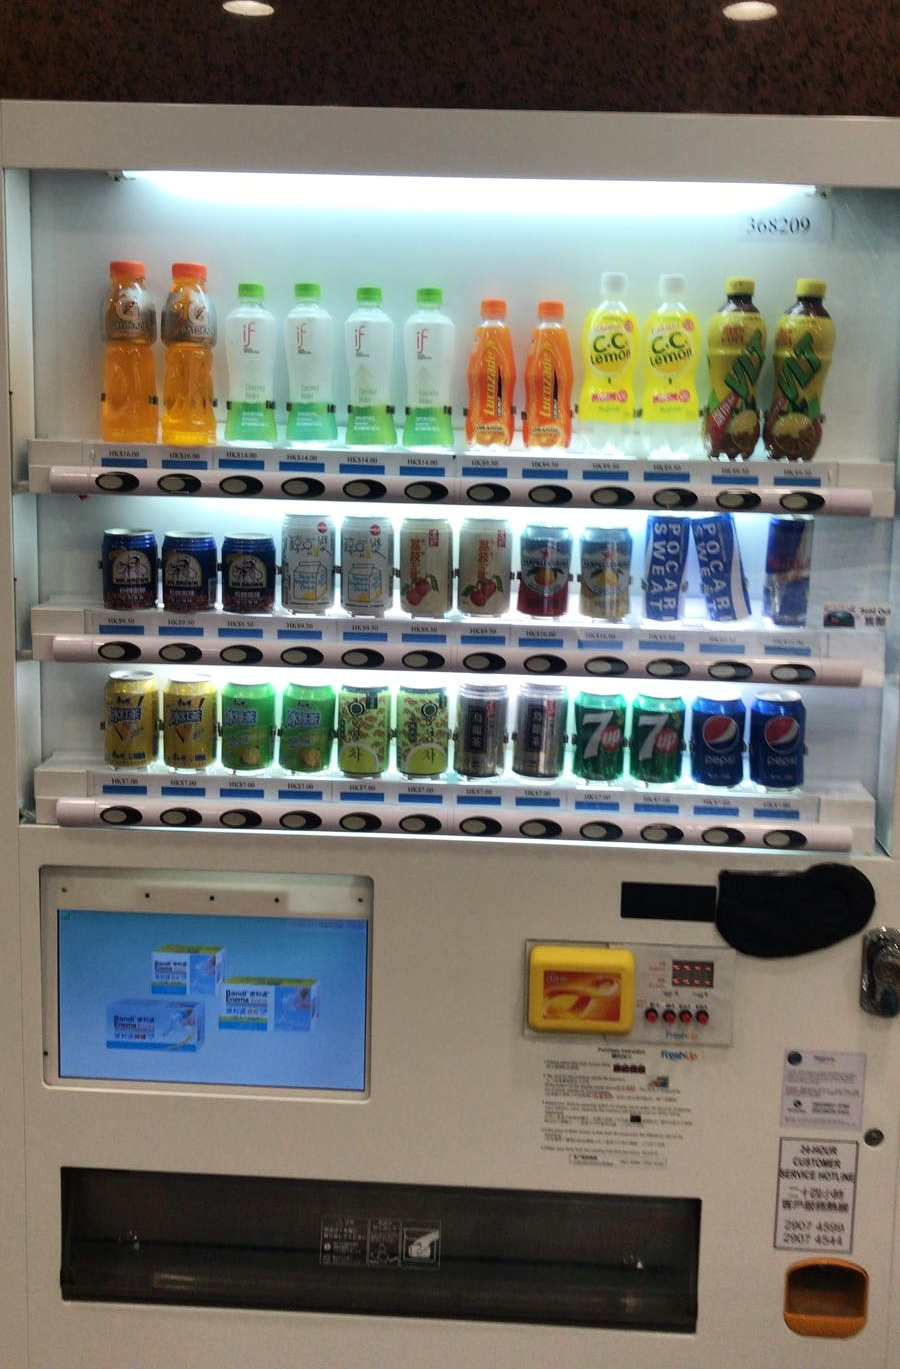 Freshup, vending machine hk, food, beverage, smart retail, convenient, vending services, hospitals, Hospital Authority